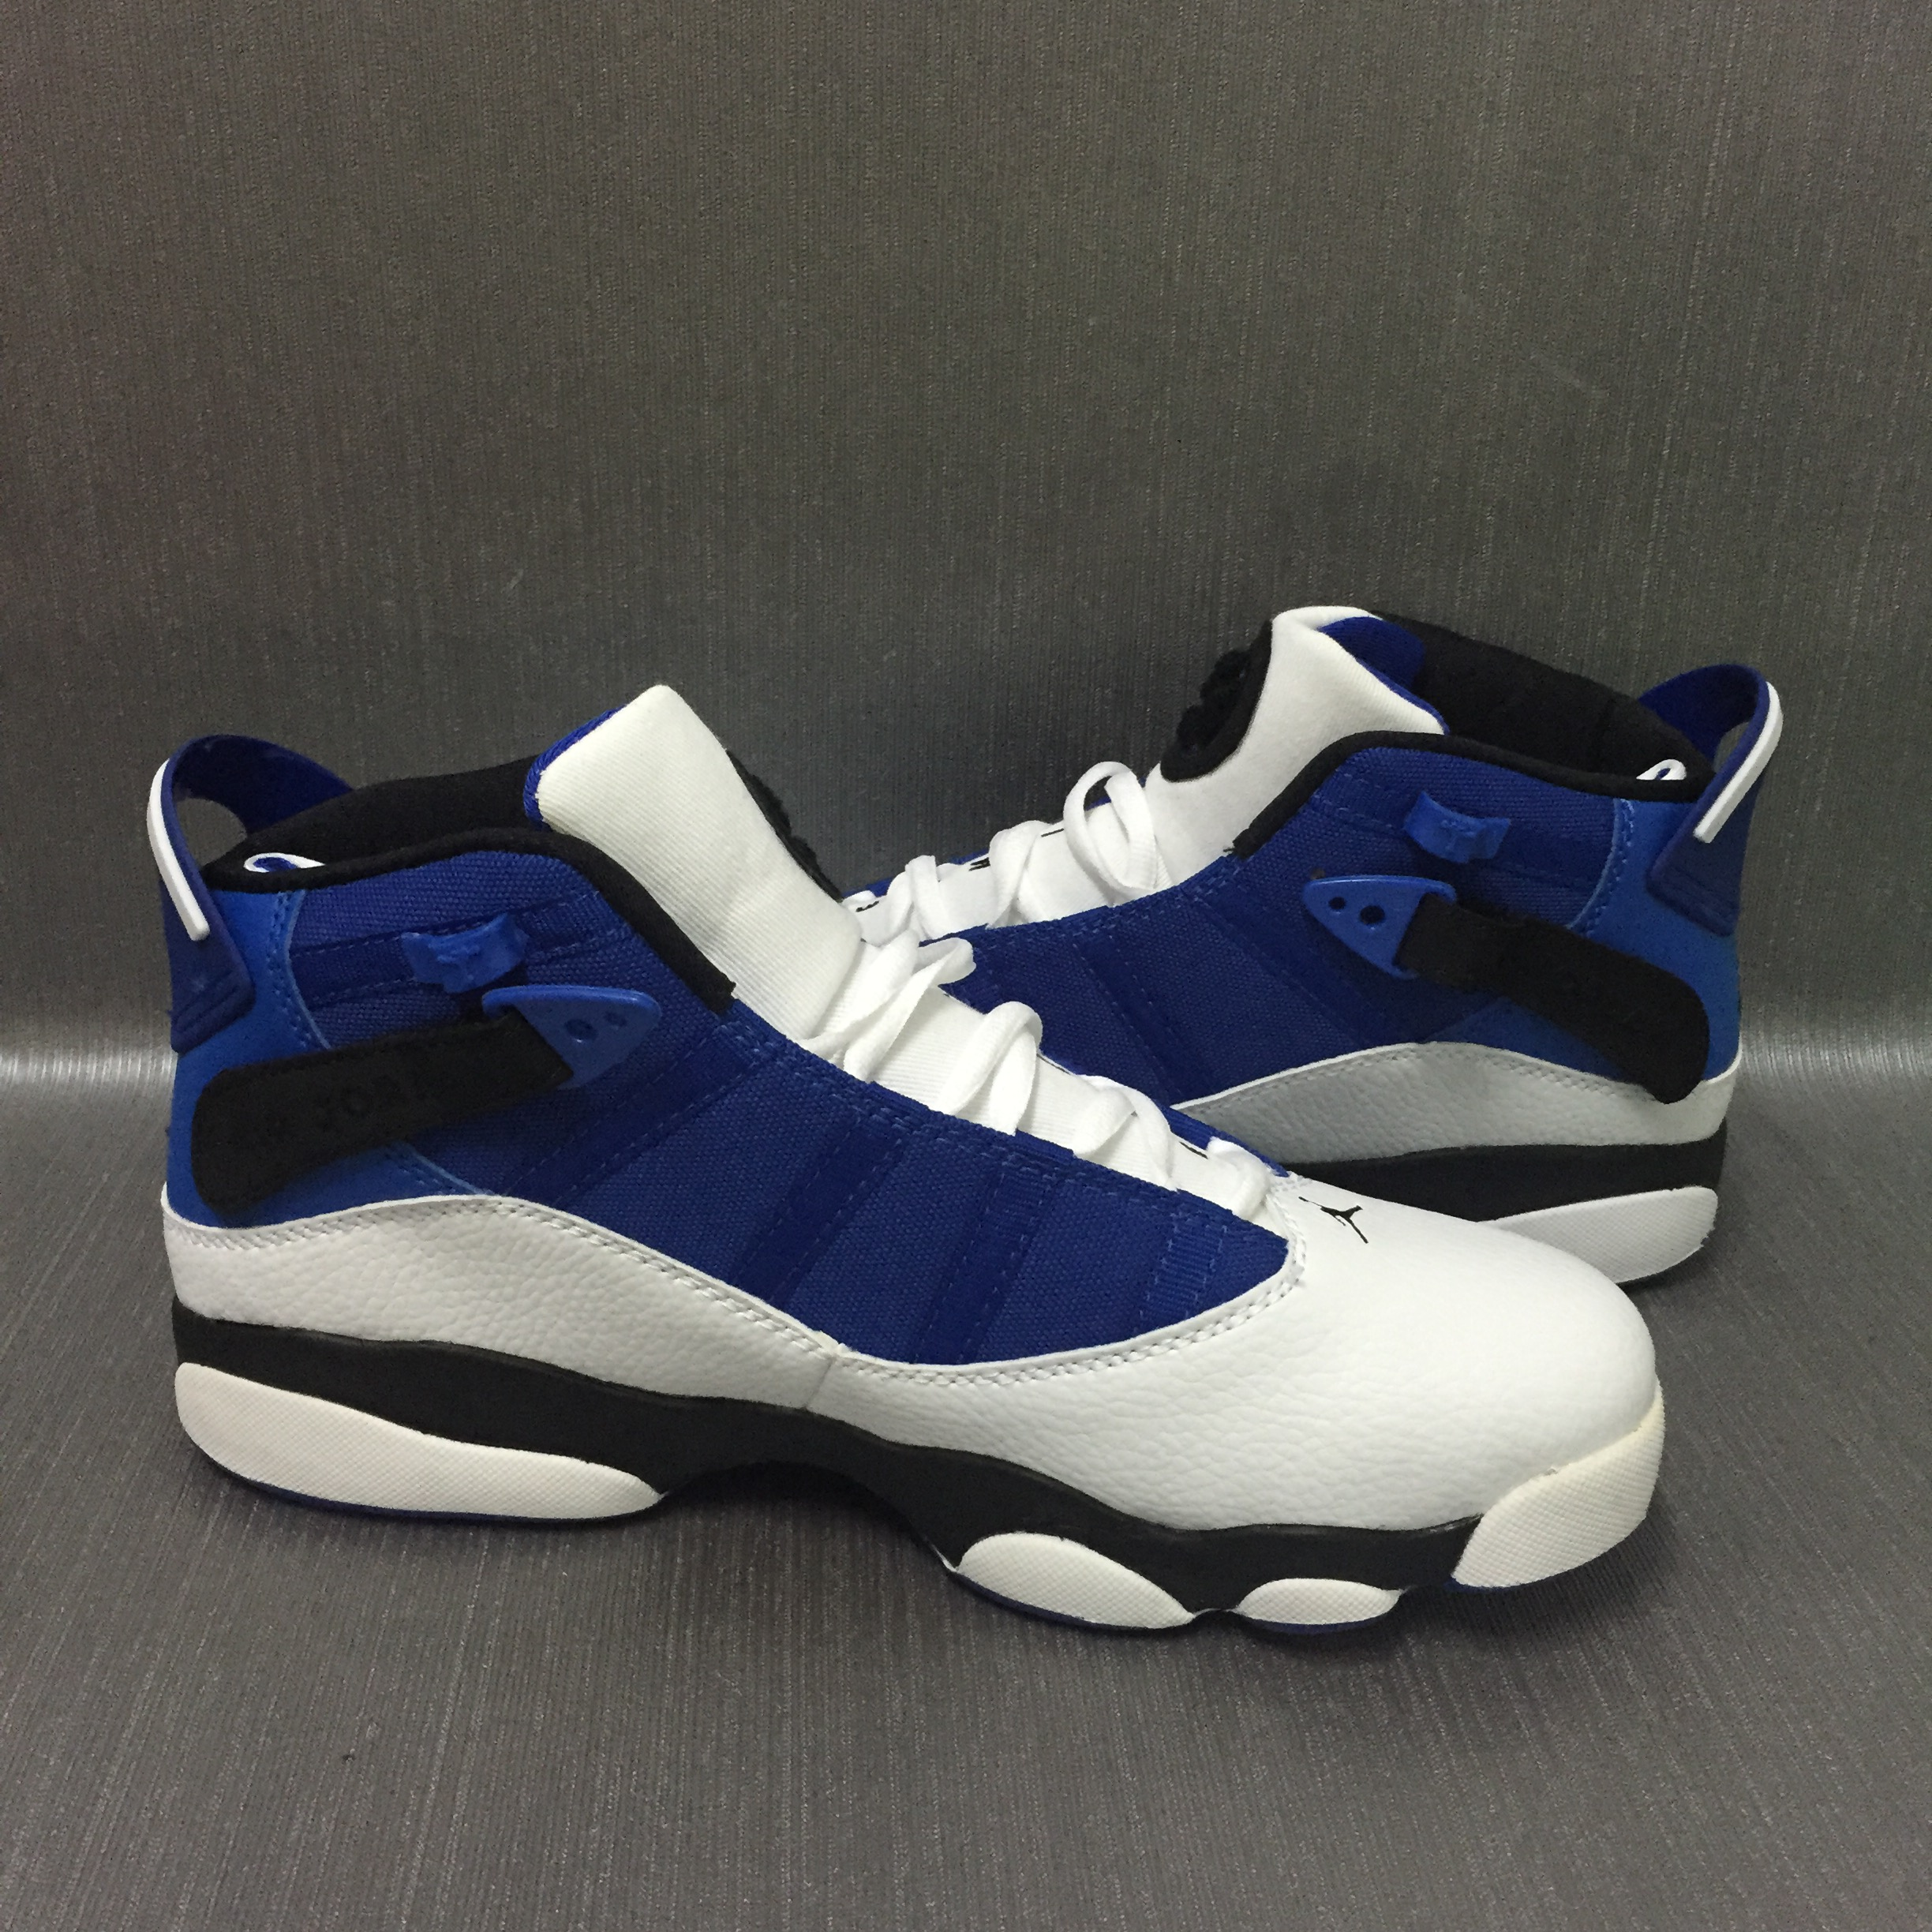 Cheap Air Jordans 6 Champion Blue White Shoes